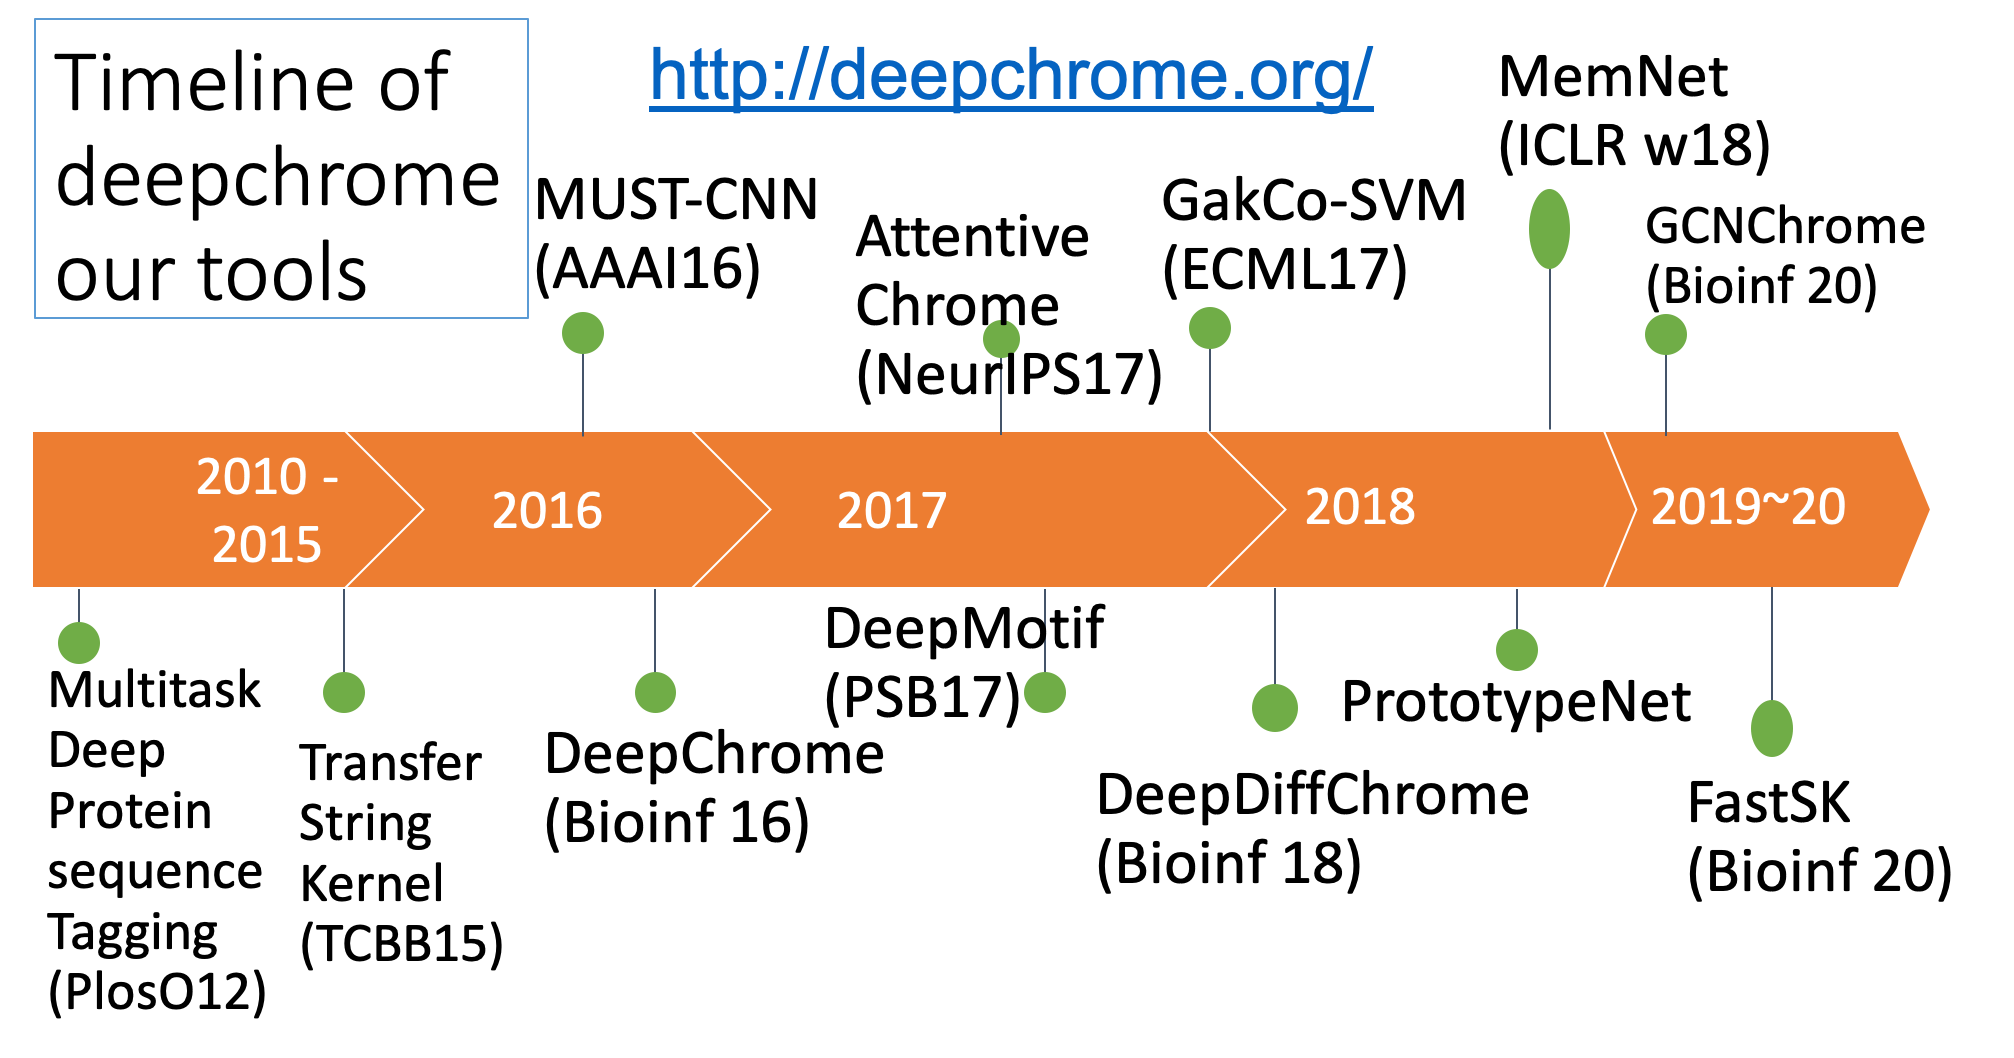 deepchrome org/ · deep chrome summary site